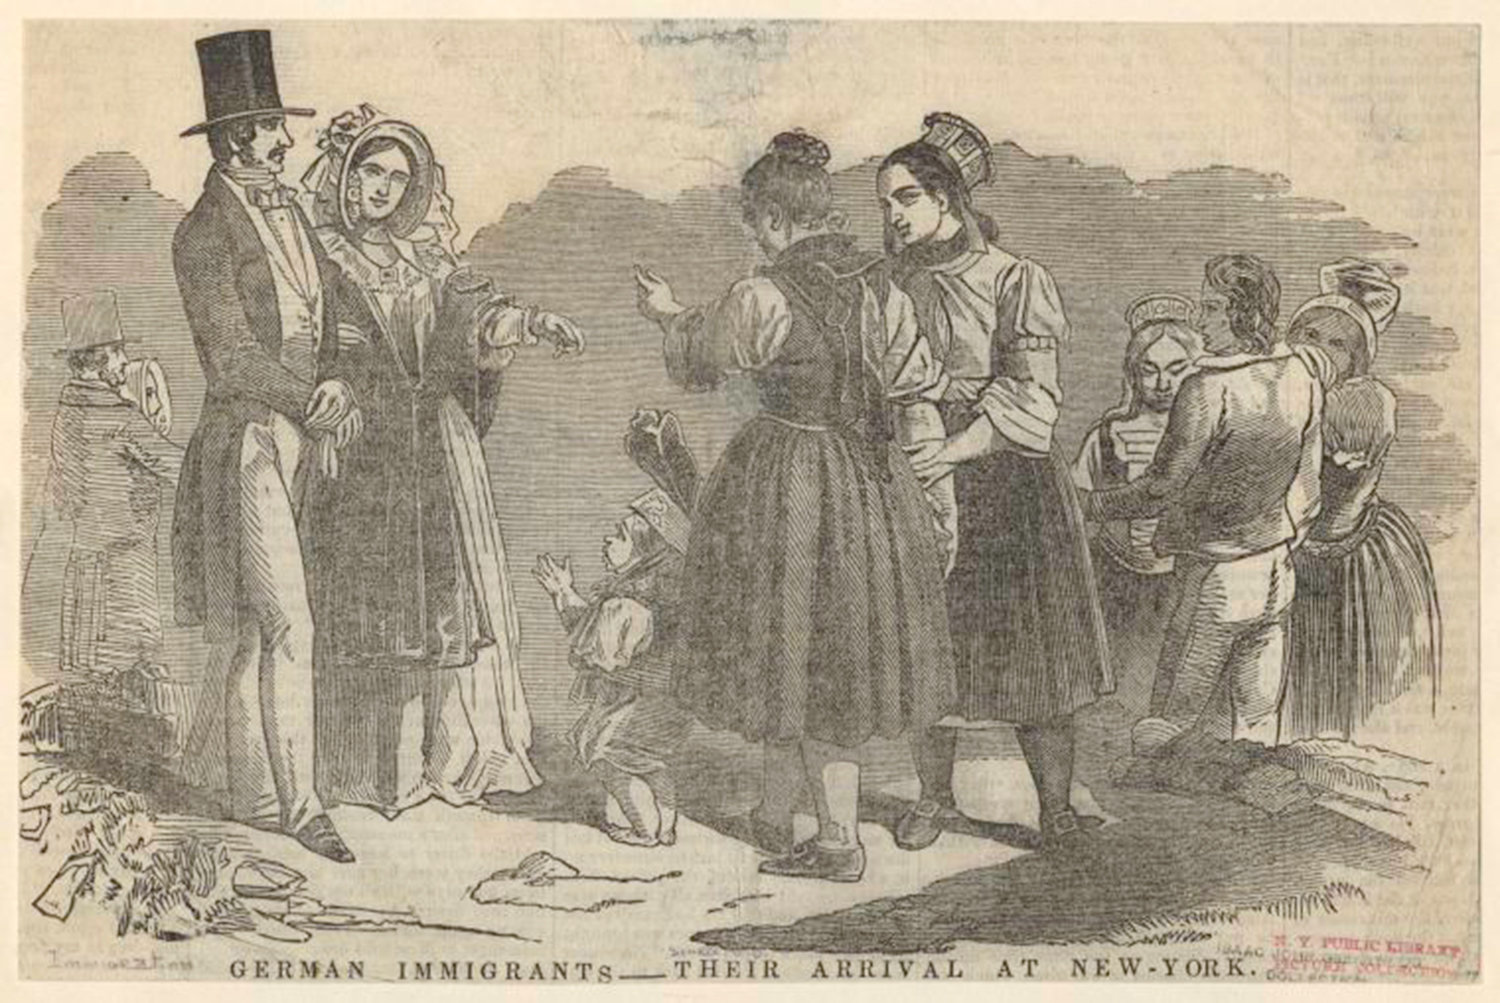 German immigrants - their arrival at New York, Isaac John Greenwood Collection, NYPL Digital Gallery, Public Domain Mark